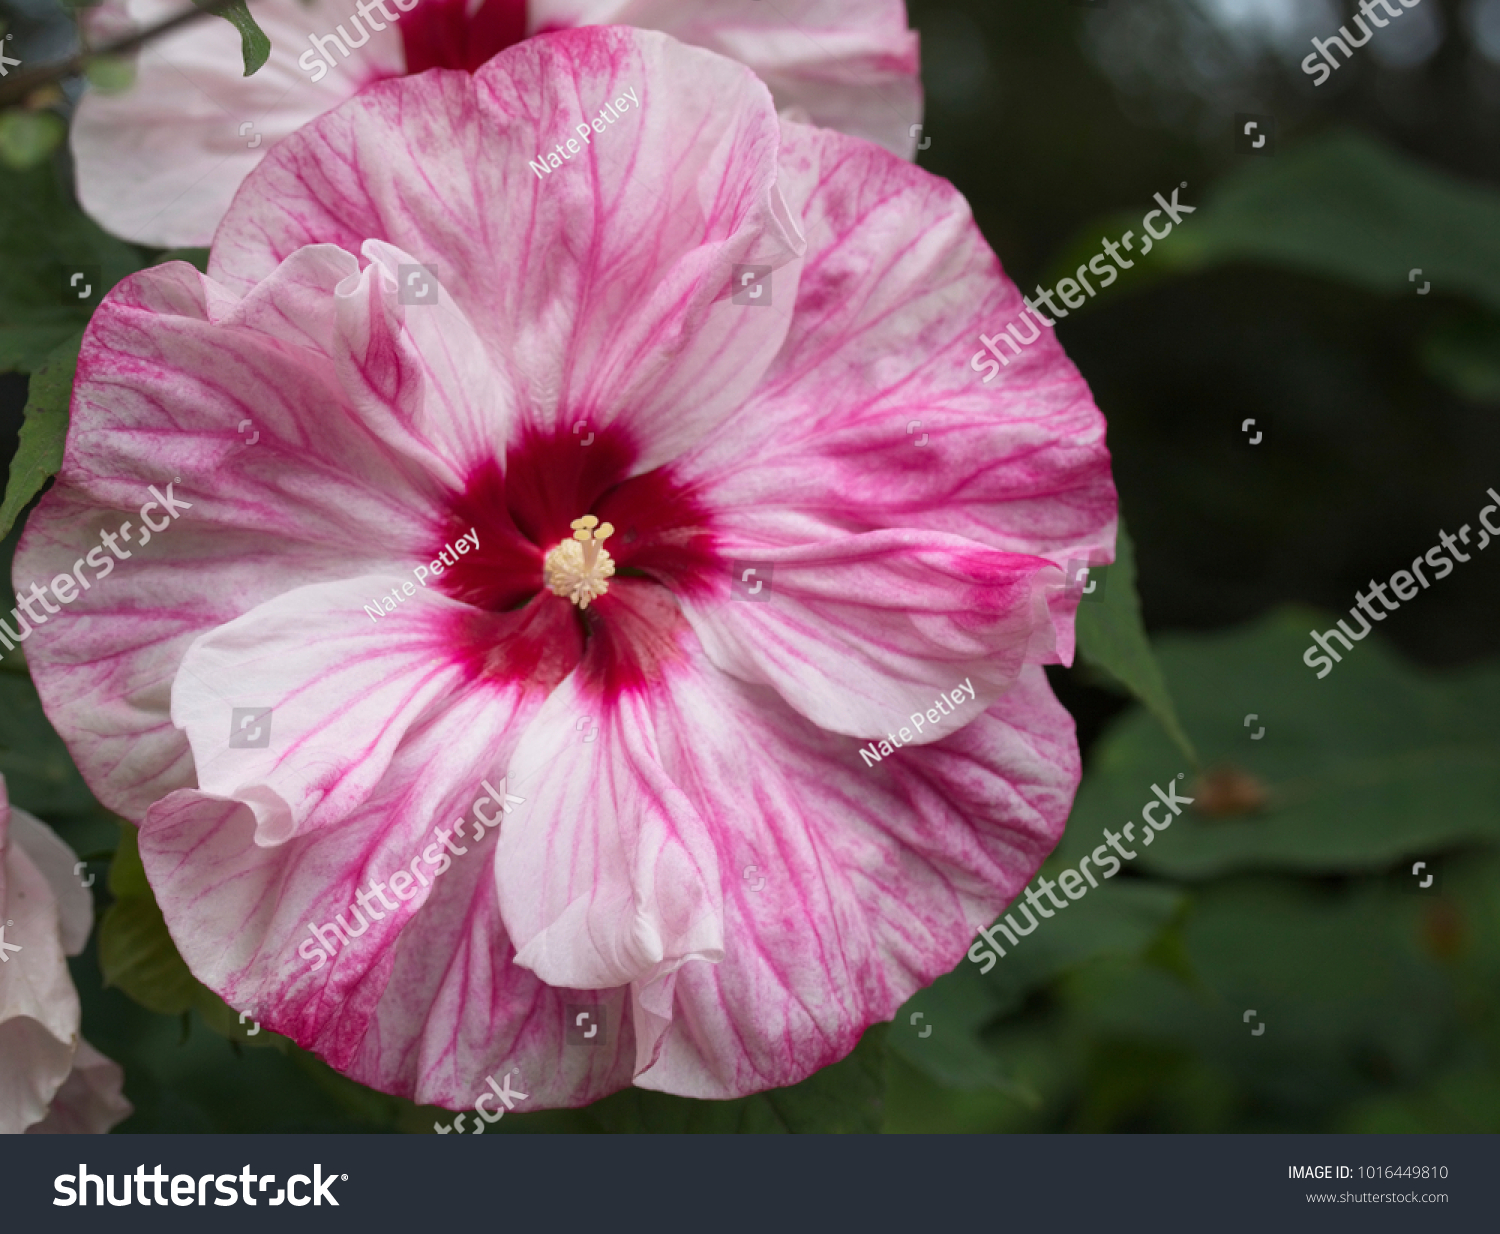 Large Open Bloom Of A Hibiscus Flower With Pink Red And White Petals